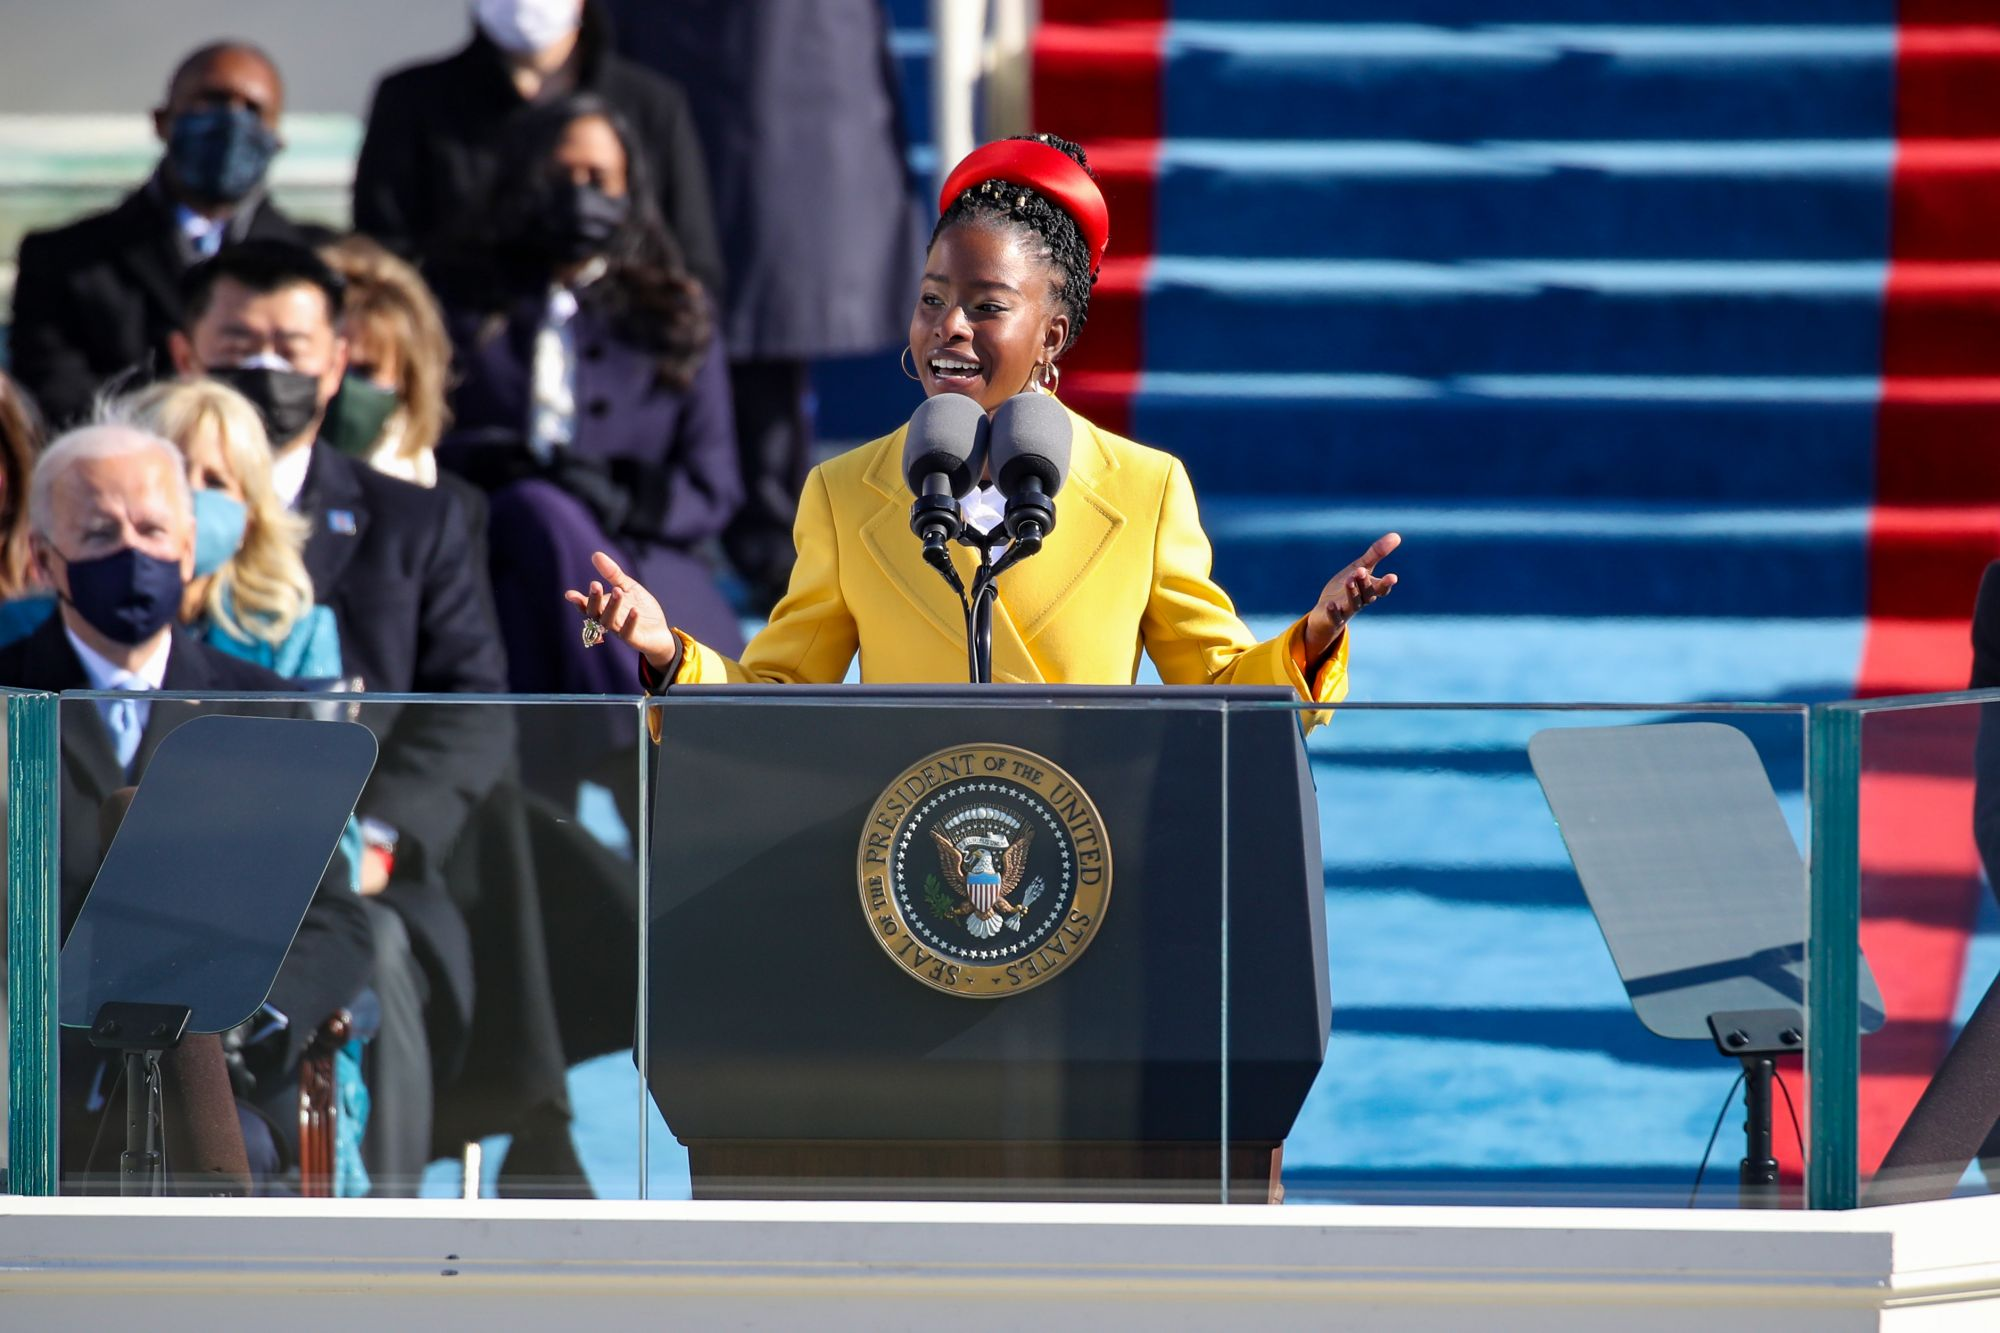 WASHINGTON, DC - JANUARY 20: Youth Poet Laureate Amanda Gorman speaks at the inauguration of U.S. President Joe Biden on the West Front of the U.S. Capitol on January 20, 2021 in Washington, DC.  During today's inauguration ceremony Joe Biden becomes the 46th president of the United States. (Photo by Rob Carr/Getty Images)